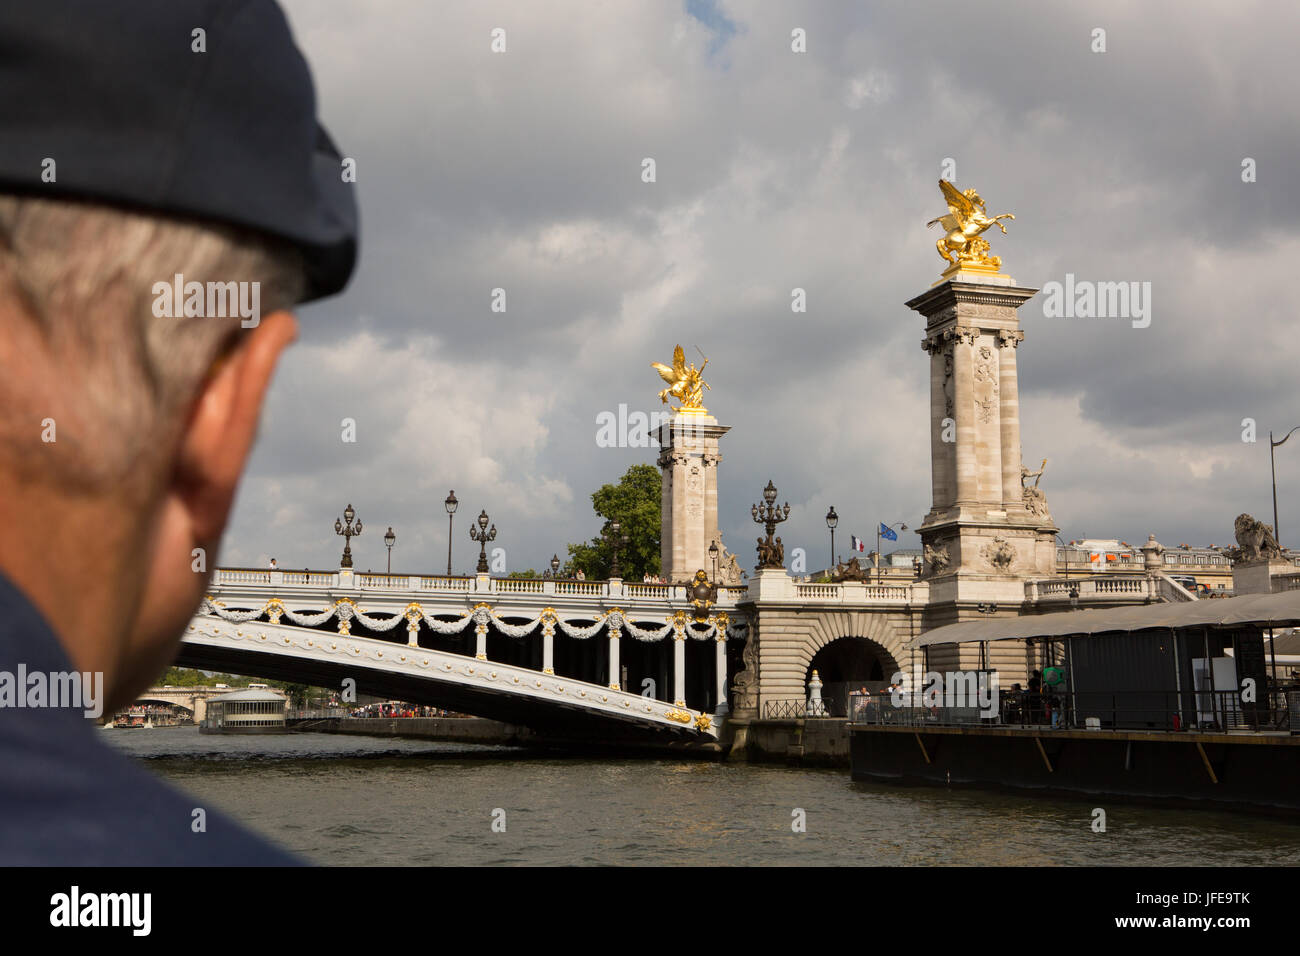 A man views the Pont de Alexandre III from a boat cruising on the Seine River. - Stock Image